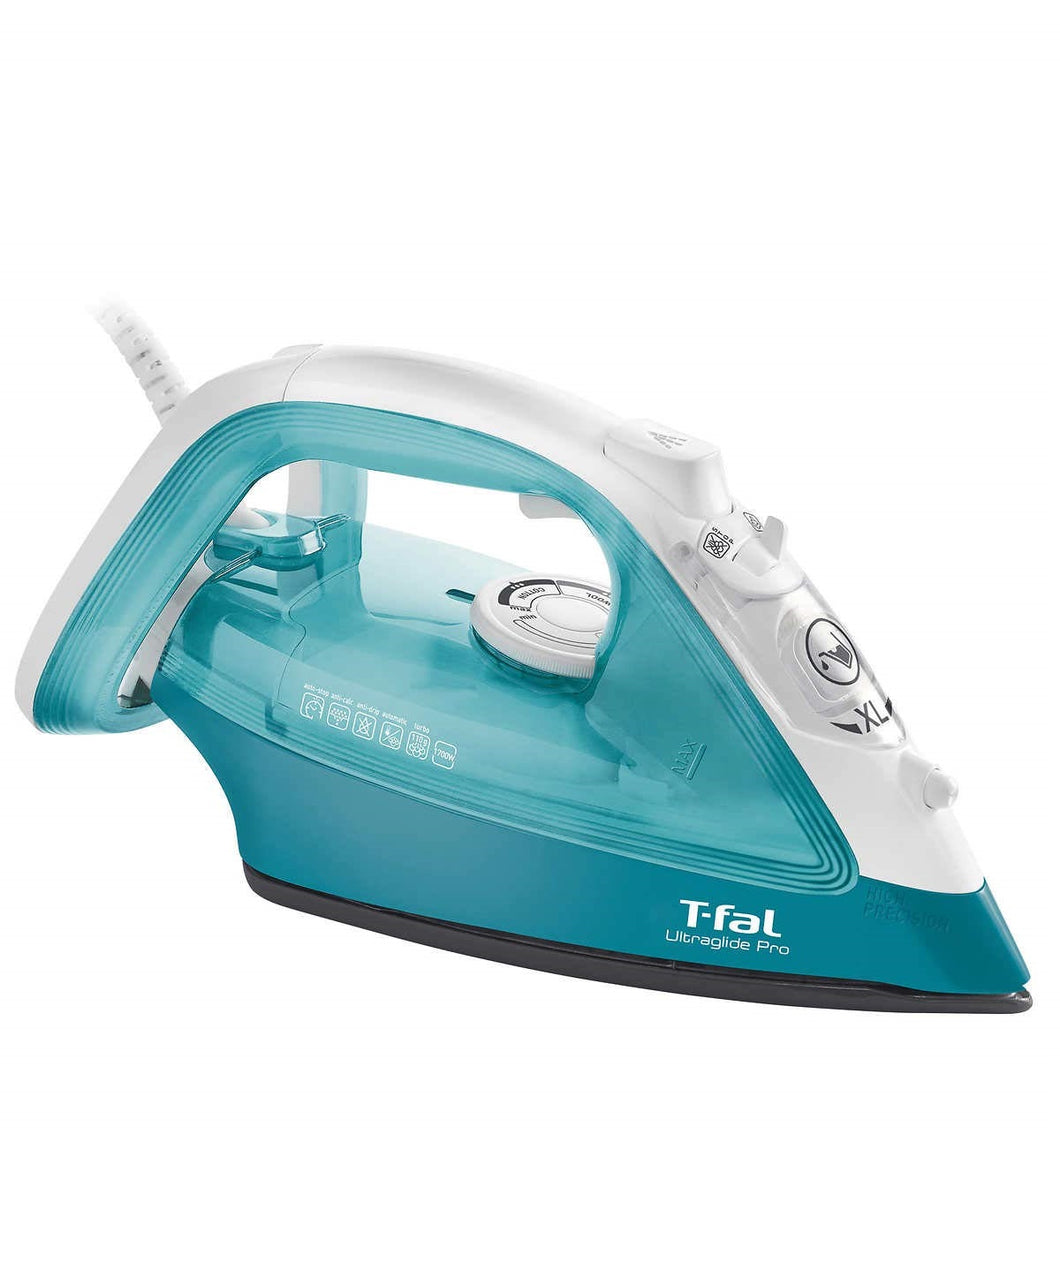 T-fal FV4027Q0 Ultraglide Pro Steam Iron, Blue